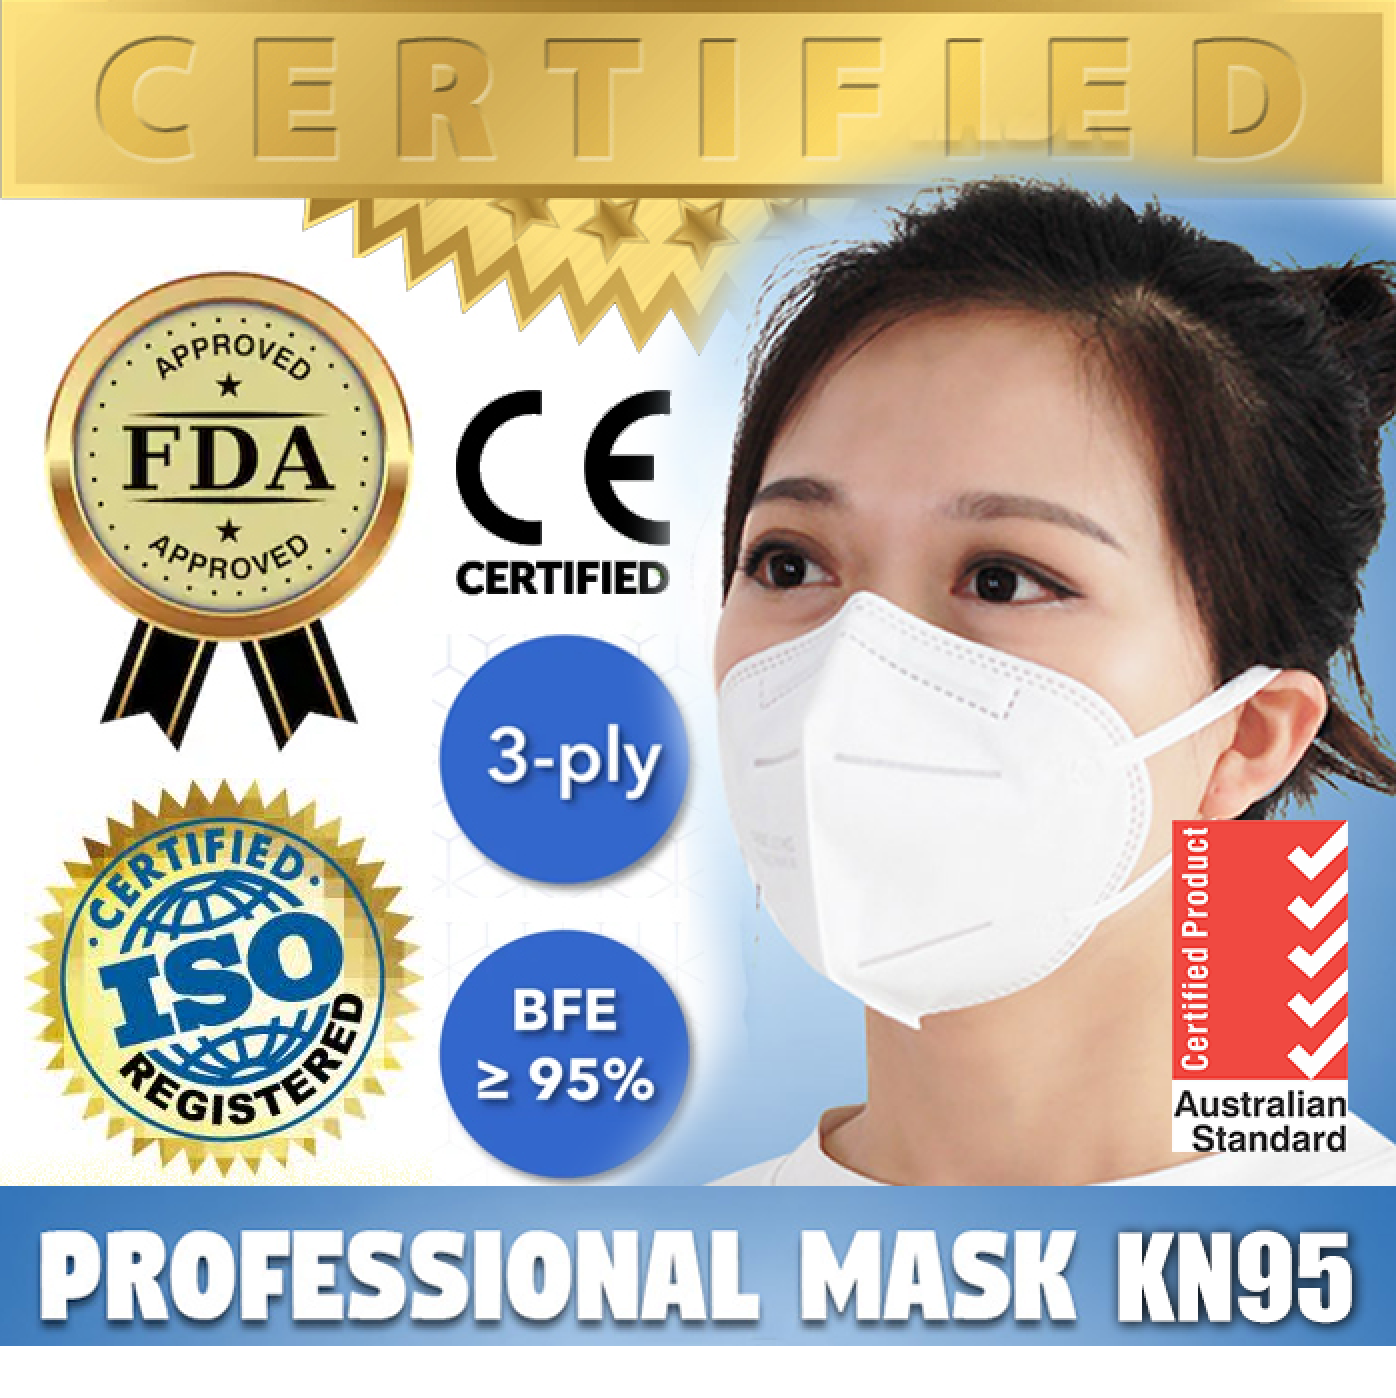 PREMIUM N95 / KN95 Surgical Sterile Medical Mask (CE, FDA, TGA) - Individual Packed